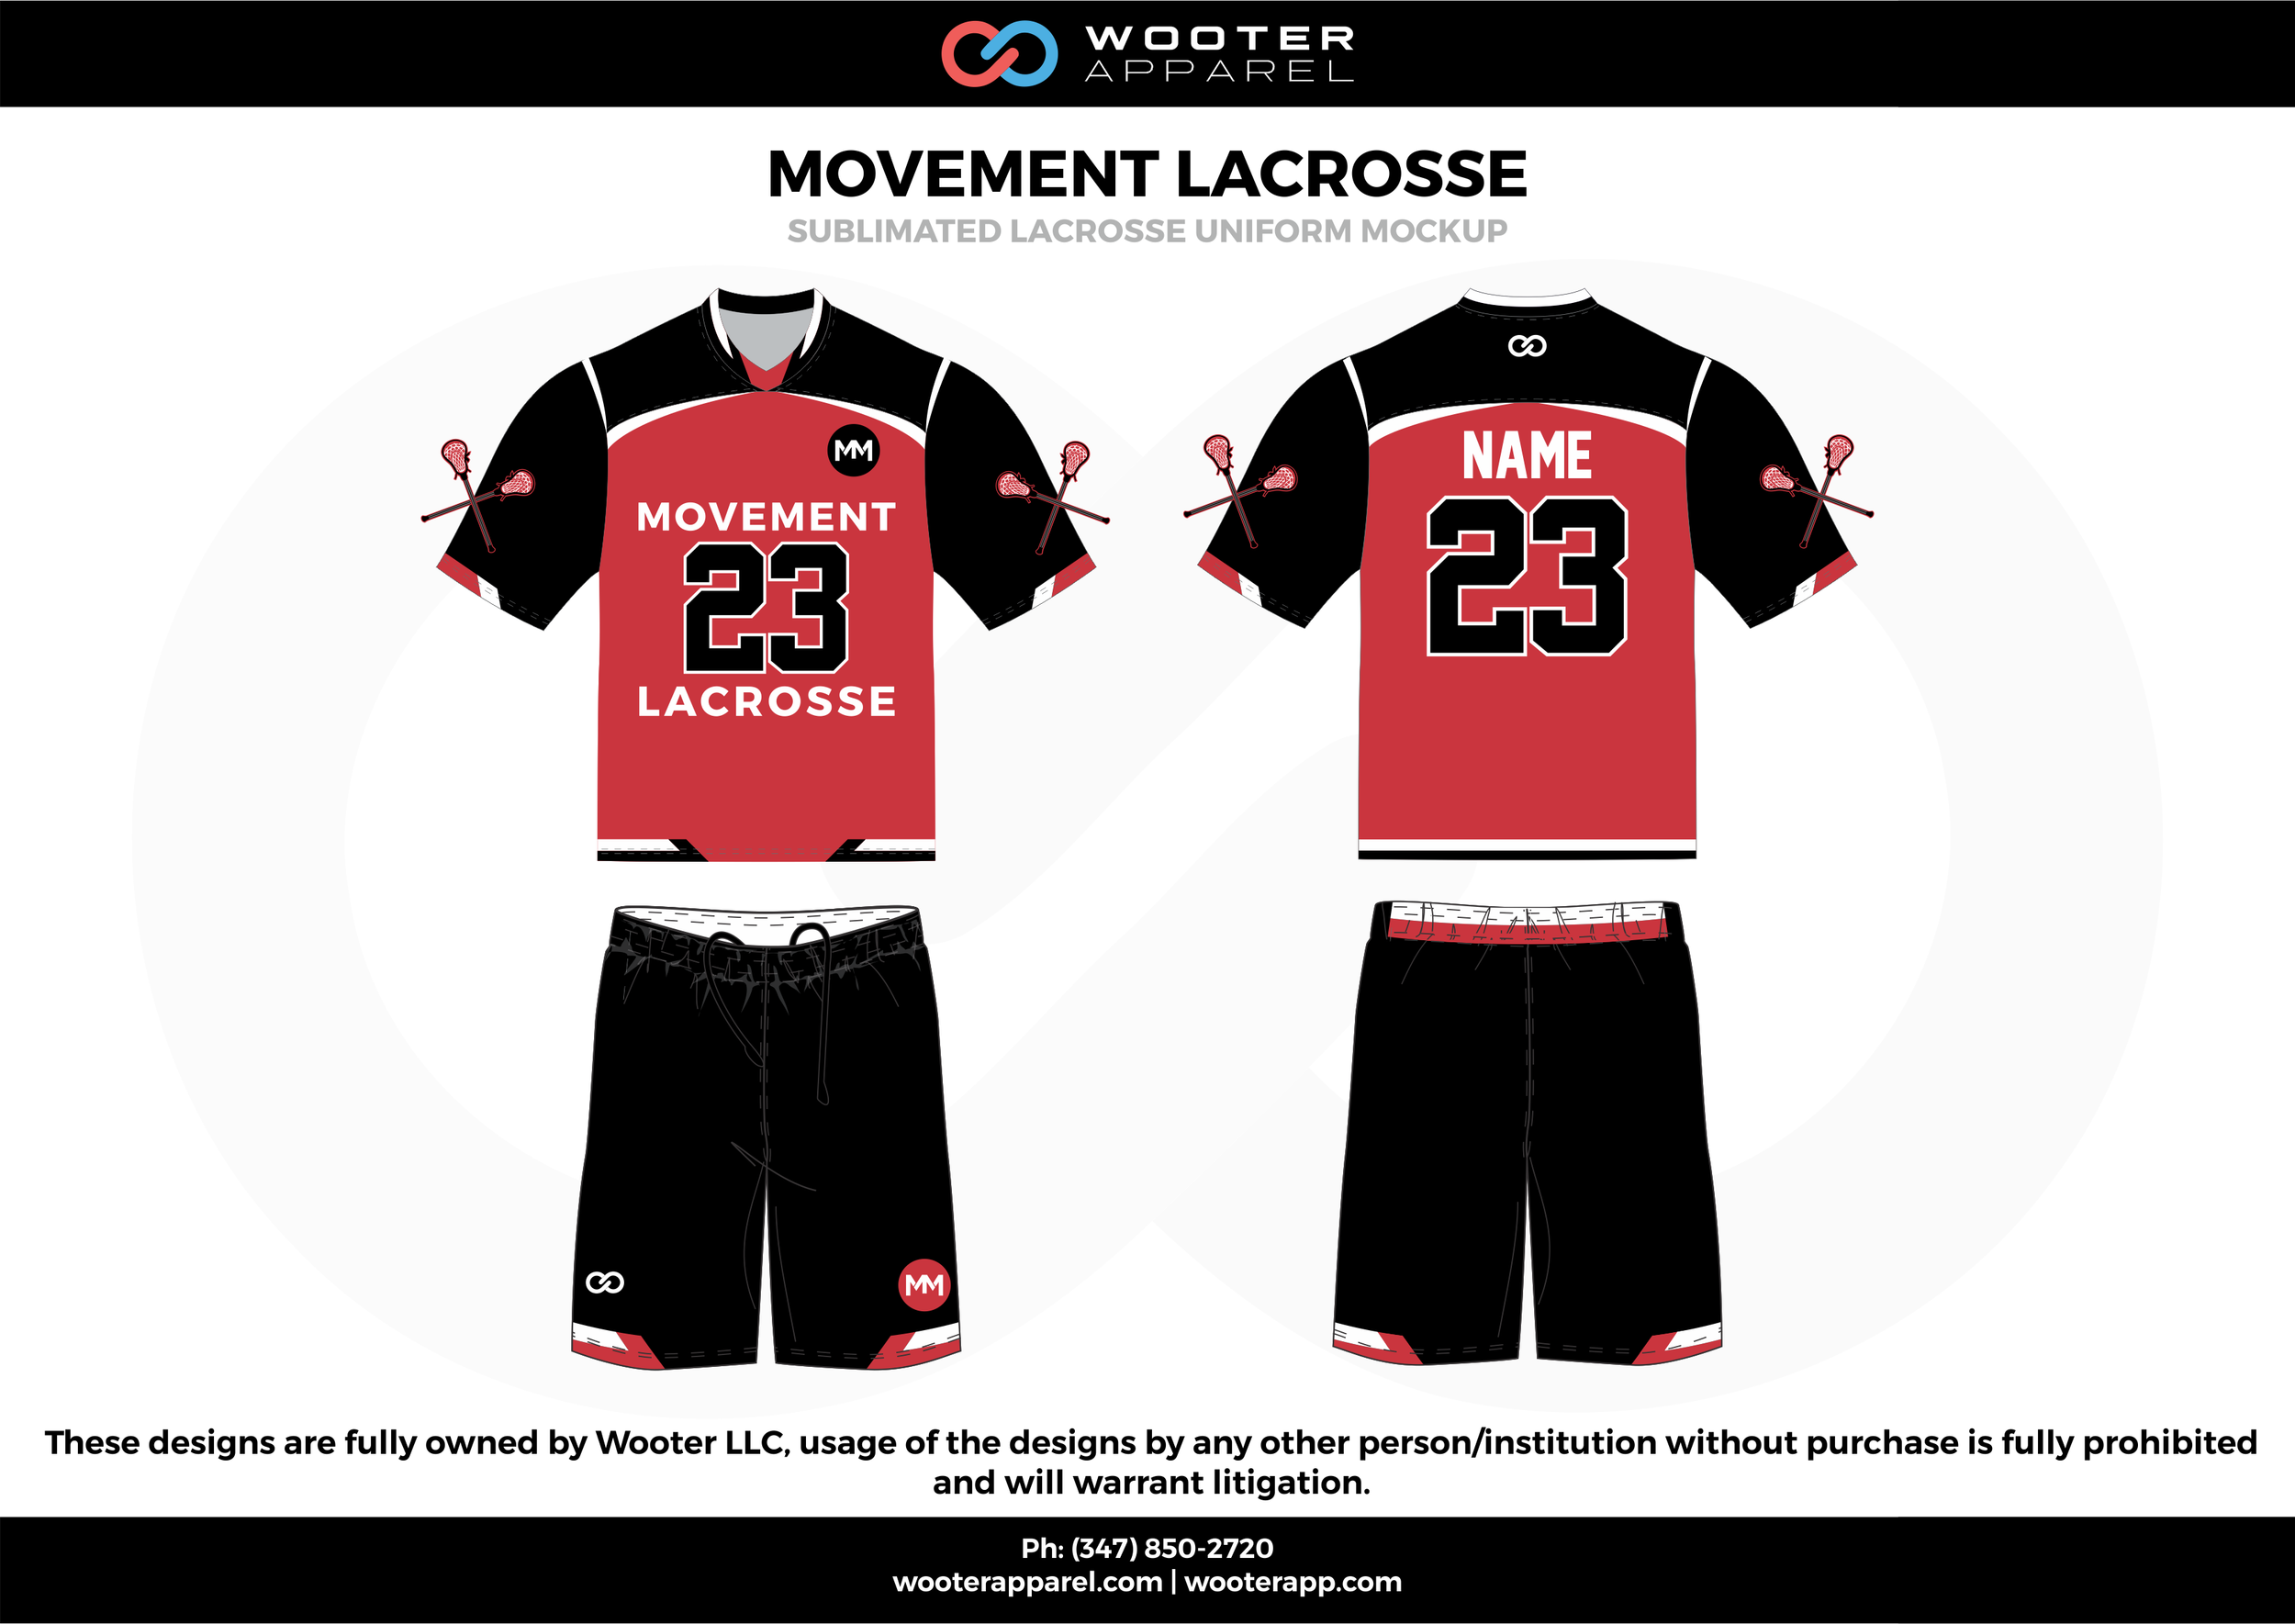 MOVEMENT LACROSSE red black and white Lacrosse uniforms jerseys shirts shorts